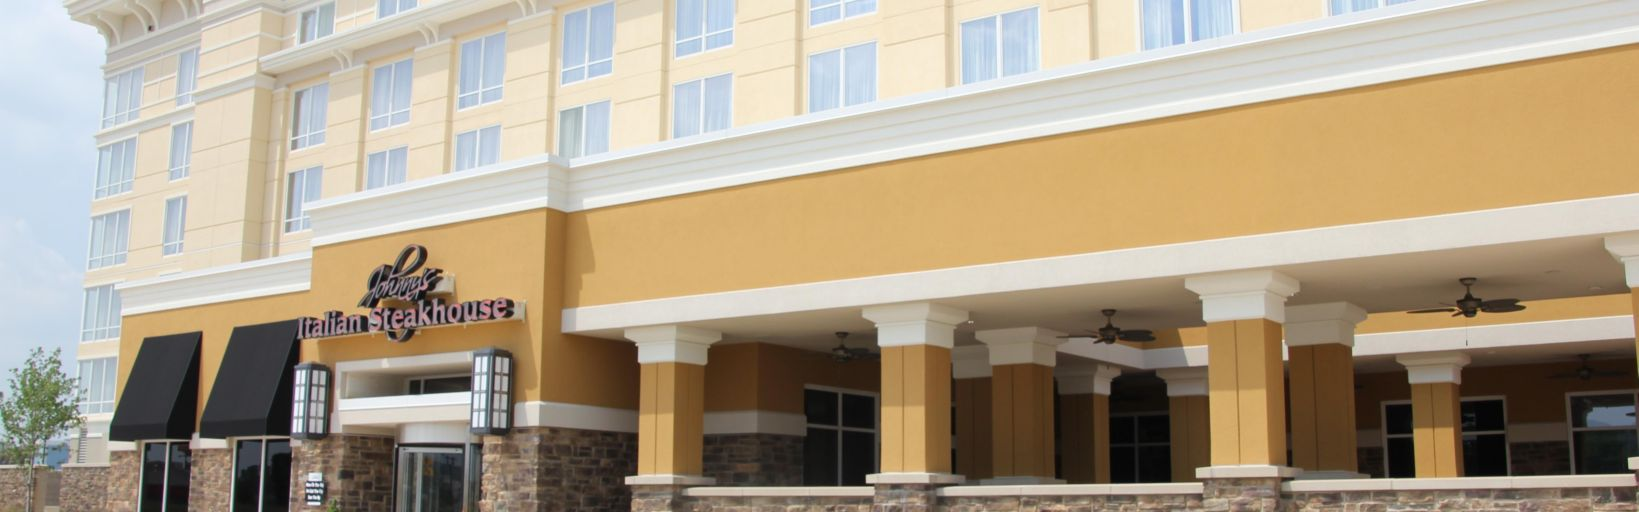 Holiday Inn Hotel Suites East Peoria Hotel By Ihg